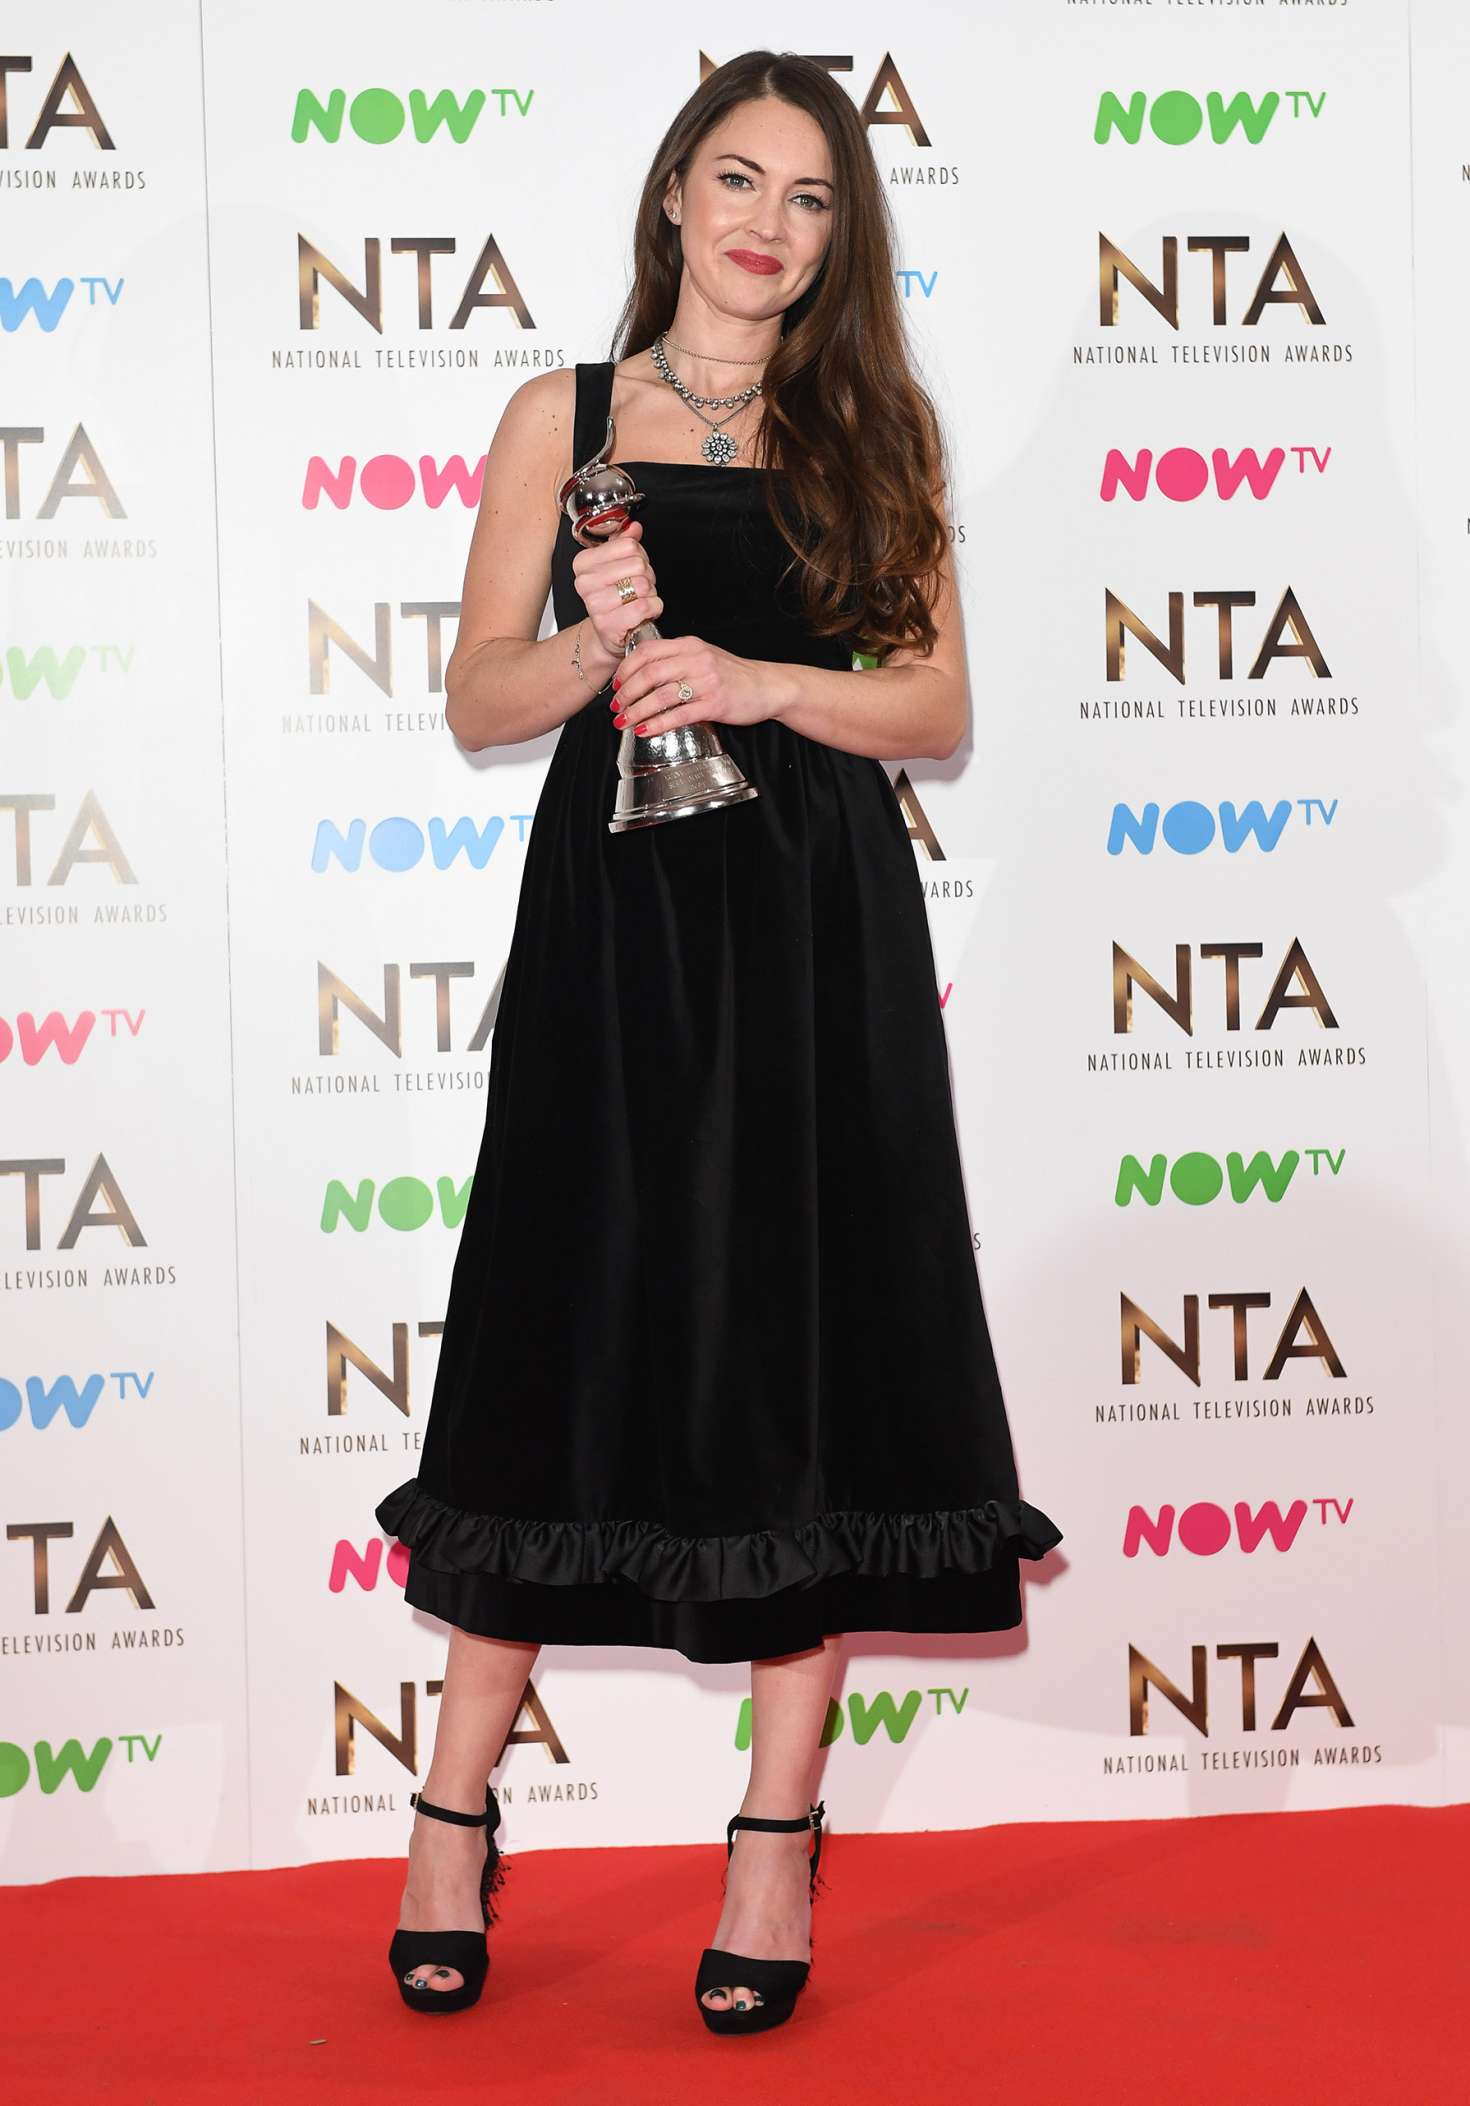 Lacey Turner 2017 : Lacey Turner: 2017 National Television Awards -10